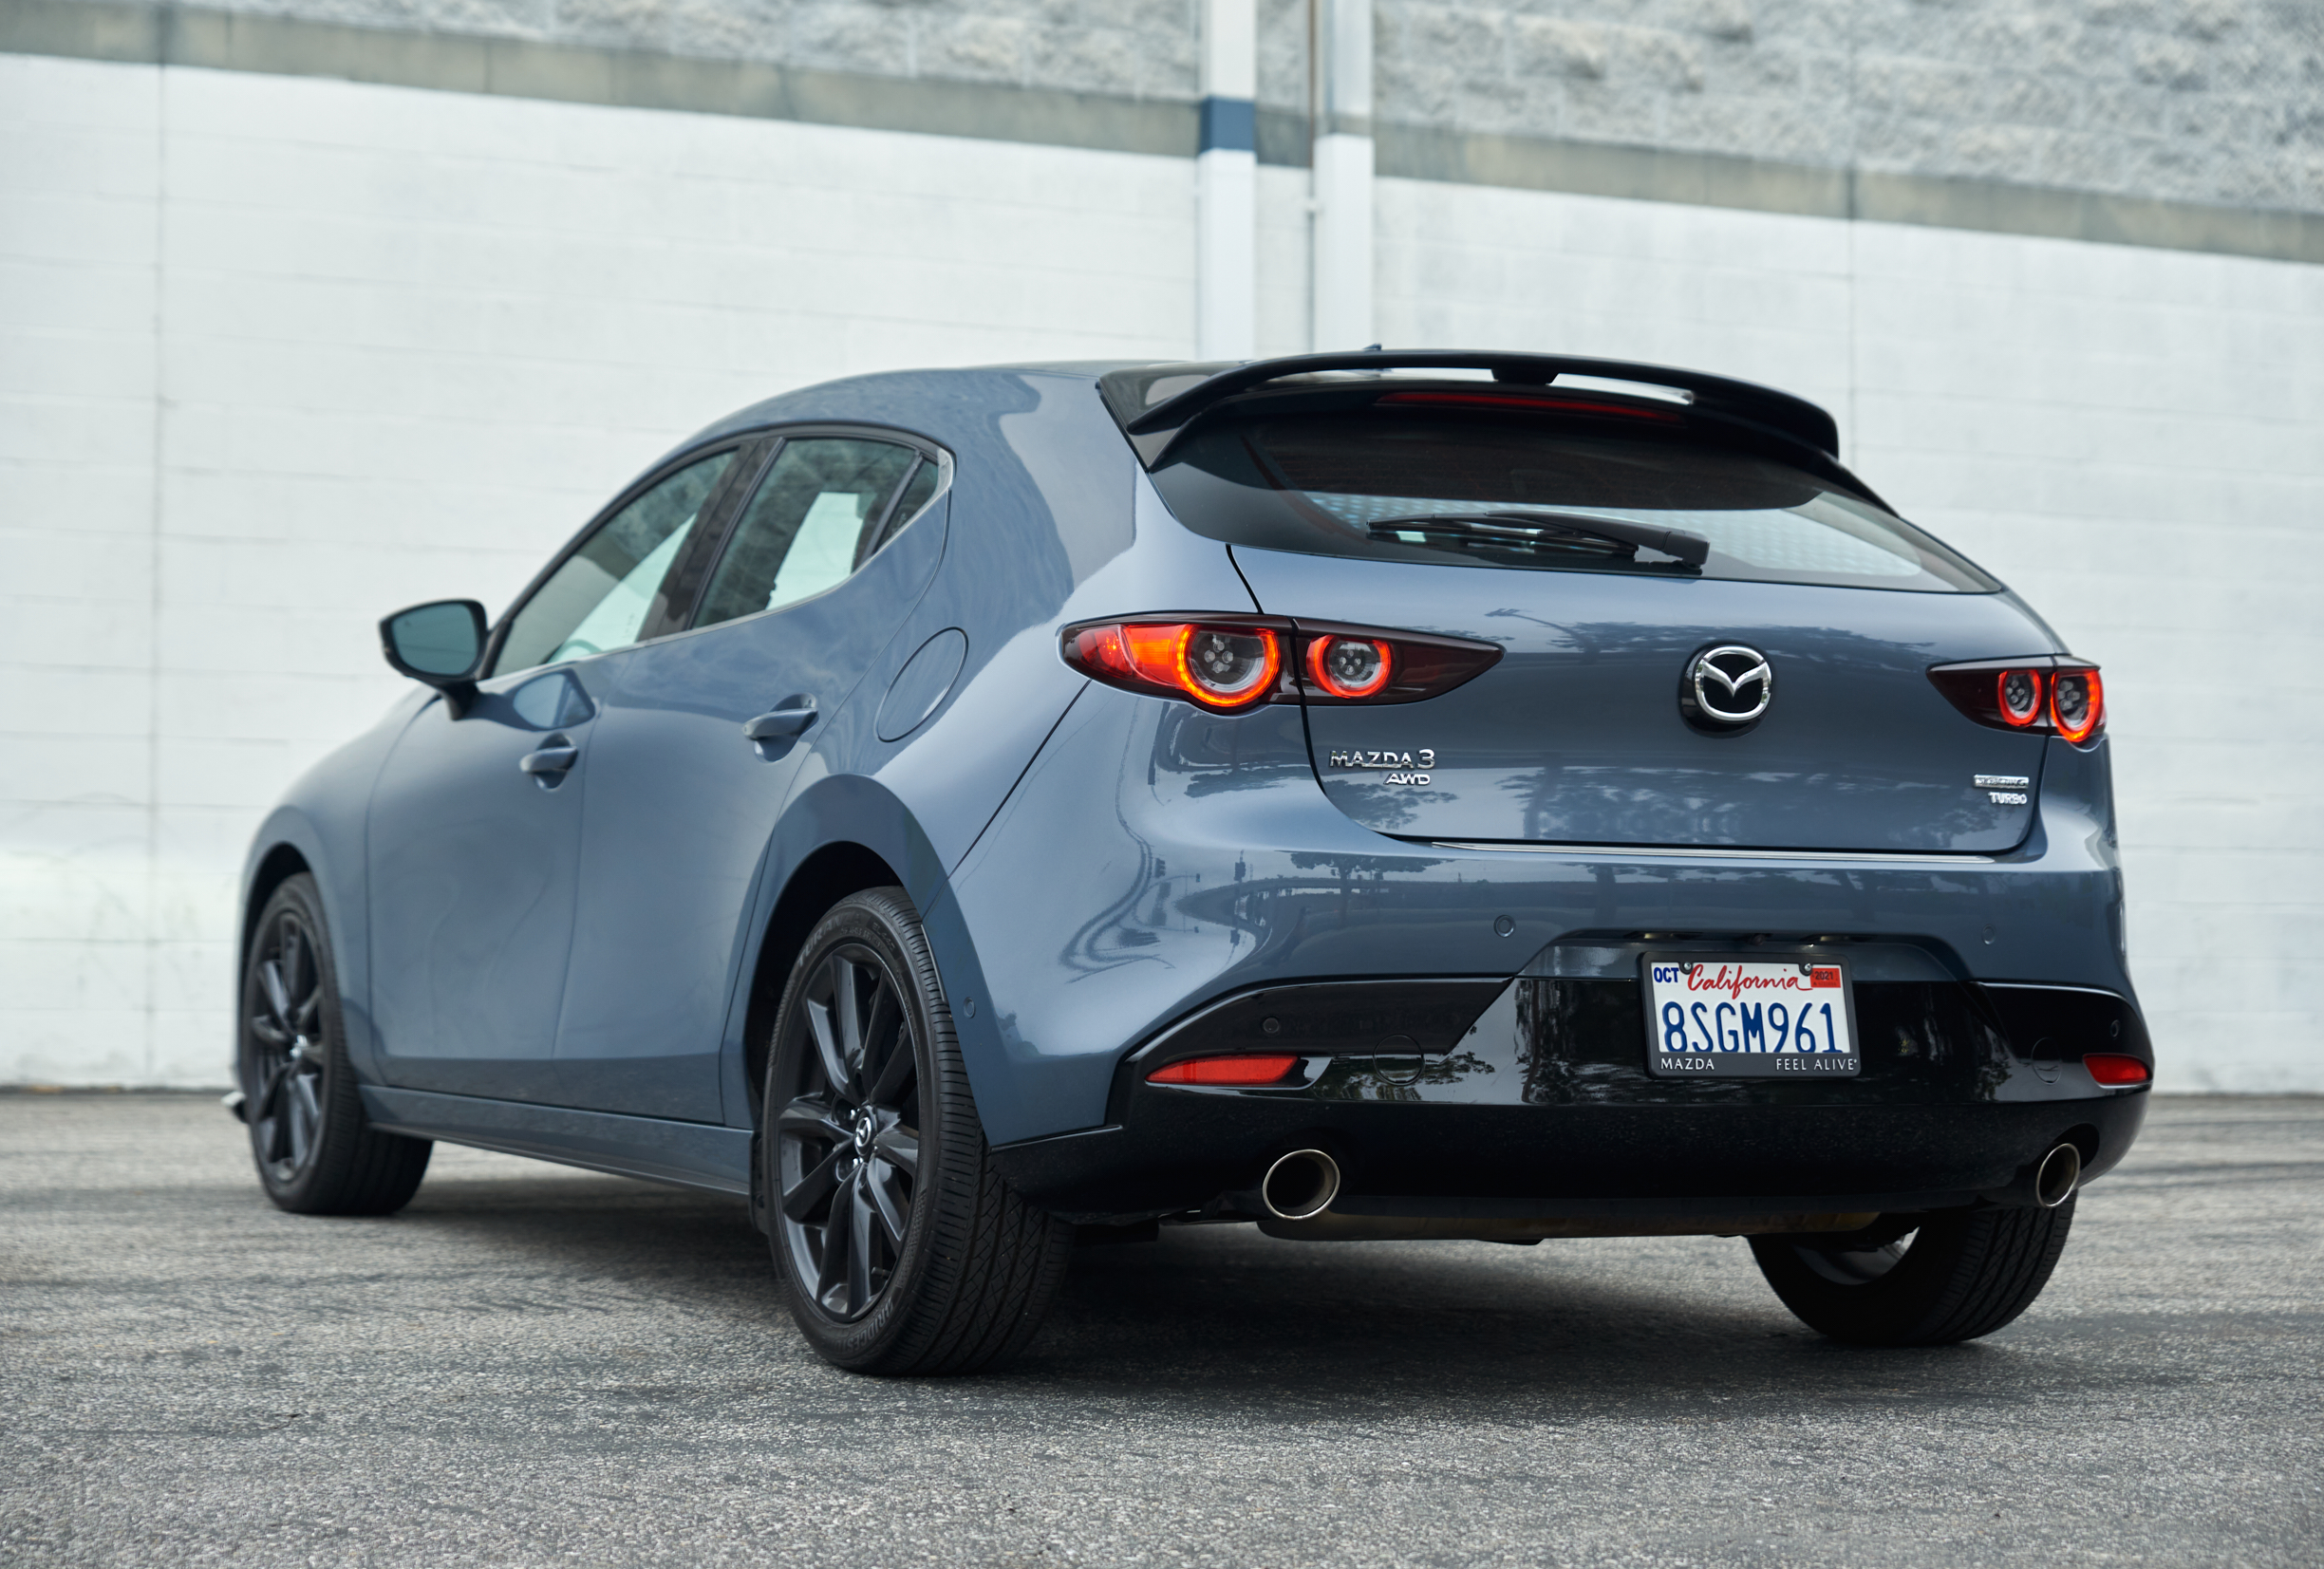 Mazda 3 2.5 Turbo Hatchback review rear view